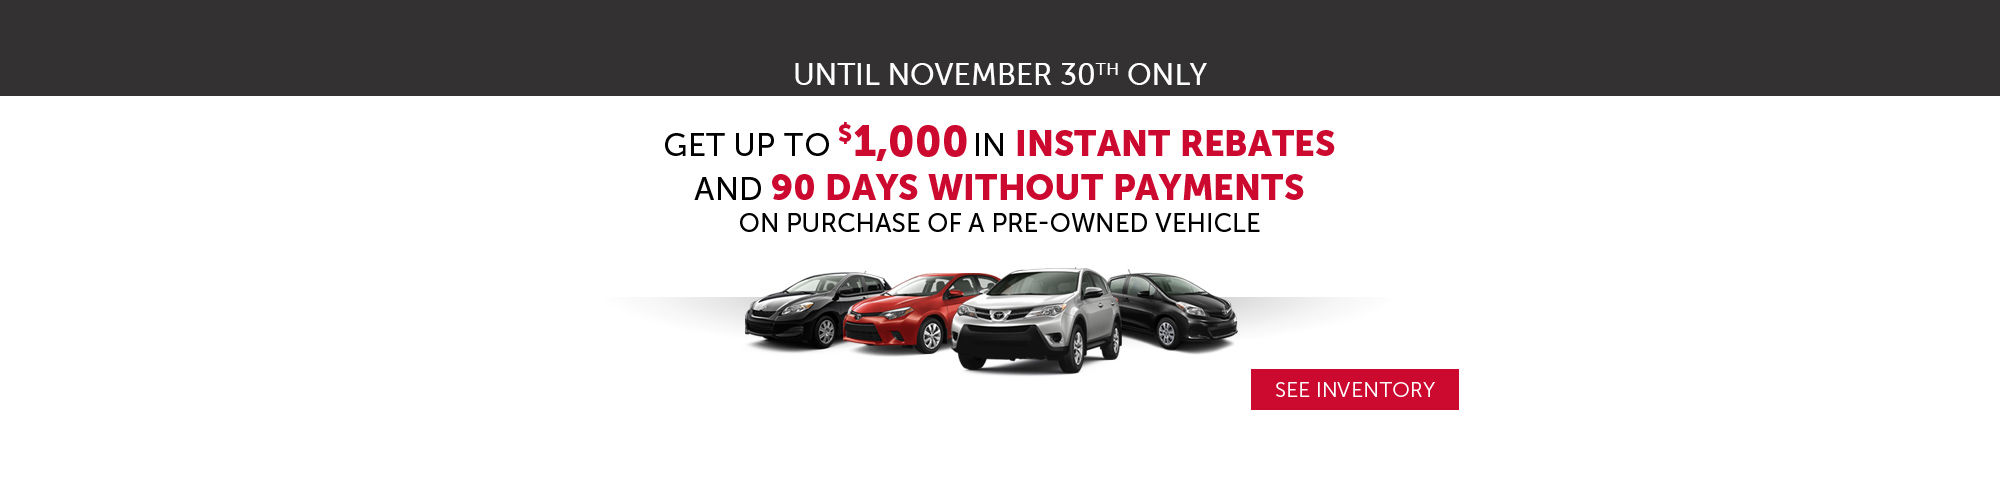 $1,000 Rebate and 90 days no payment